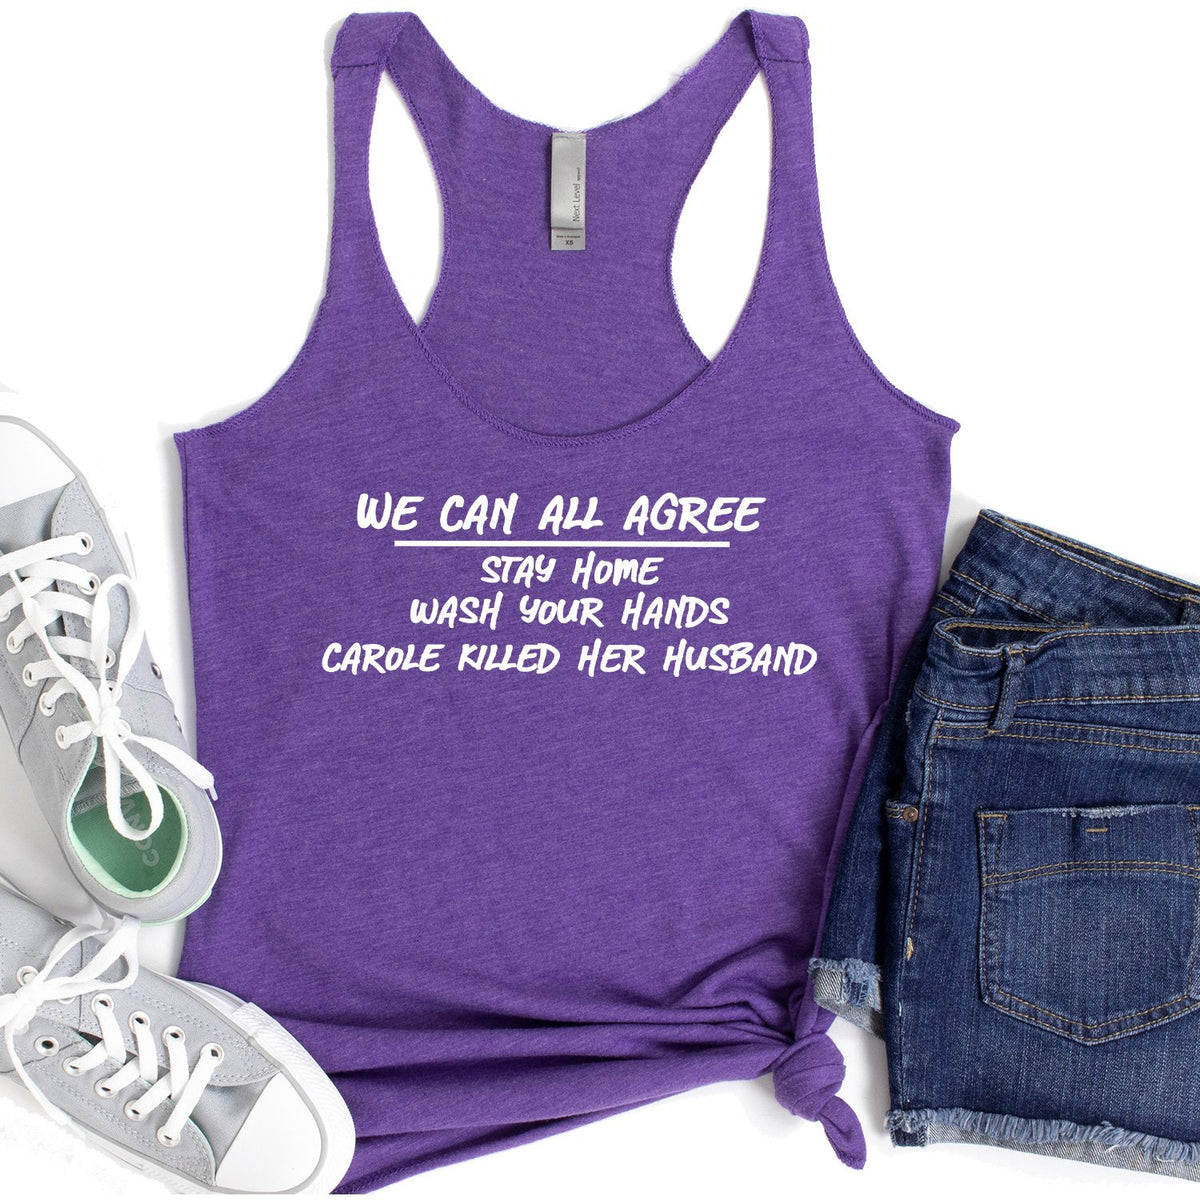 We Can All Agree Stay Home Carole Killed Her Husband - Tank Top Racerback